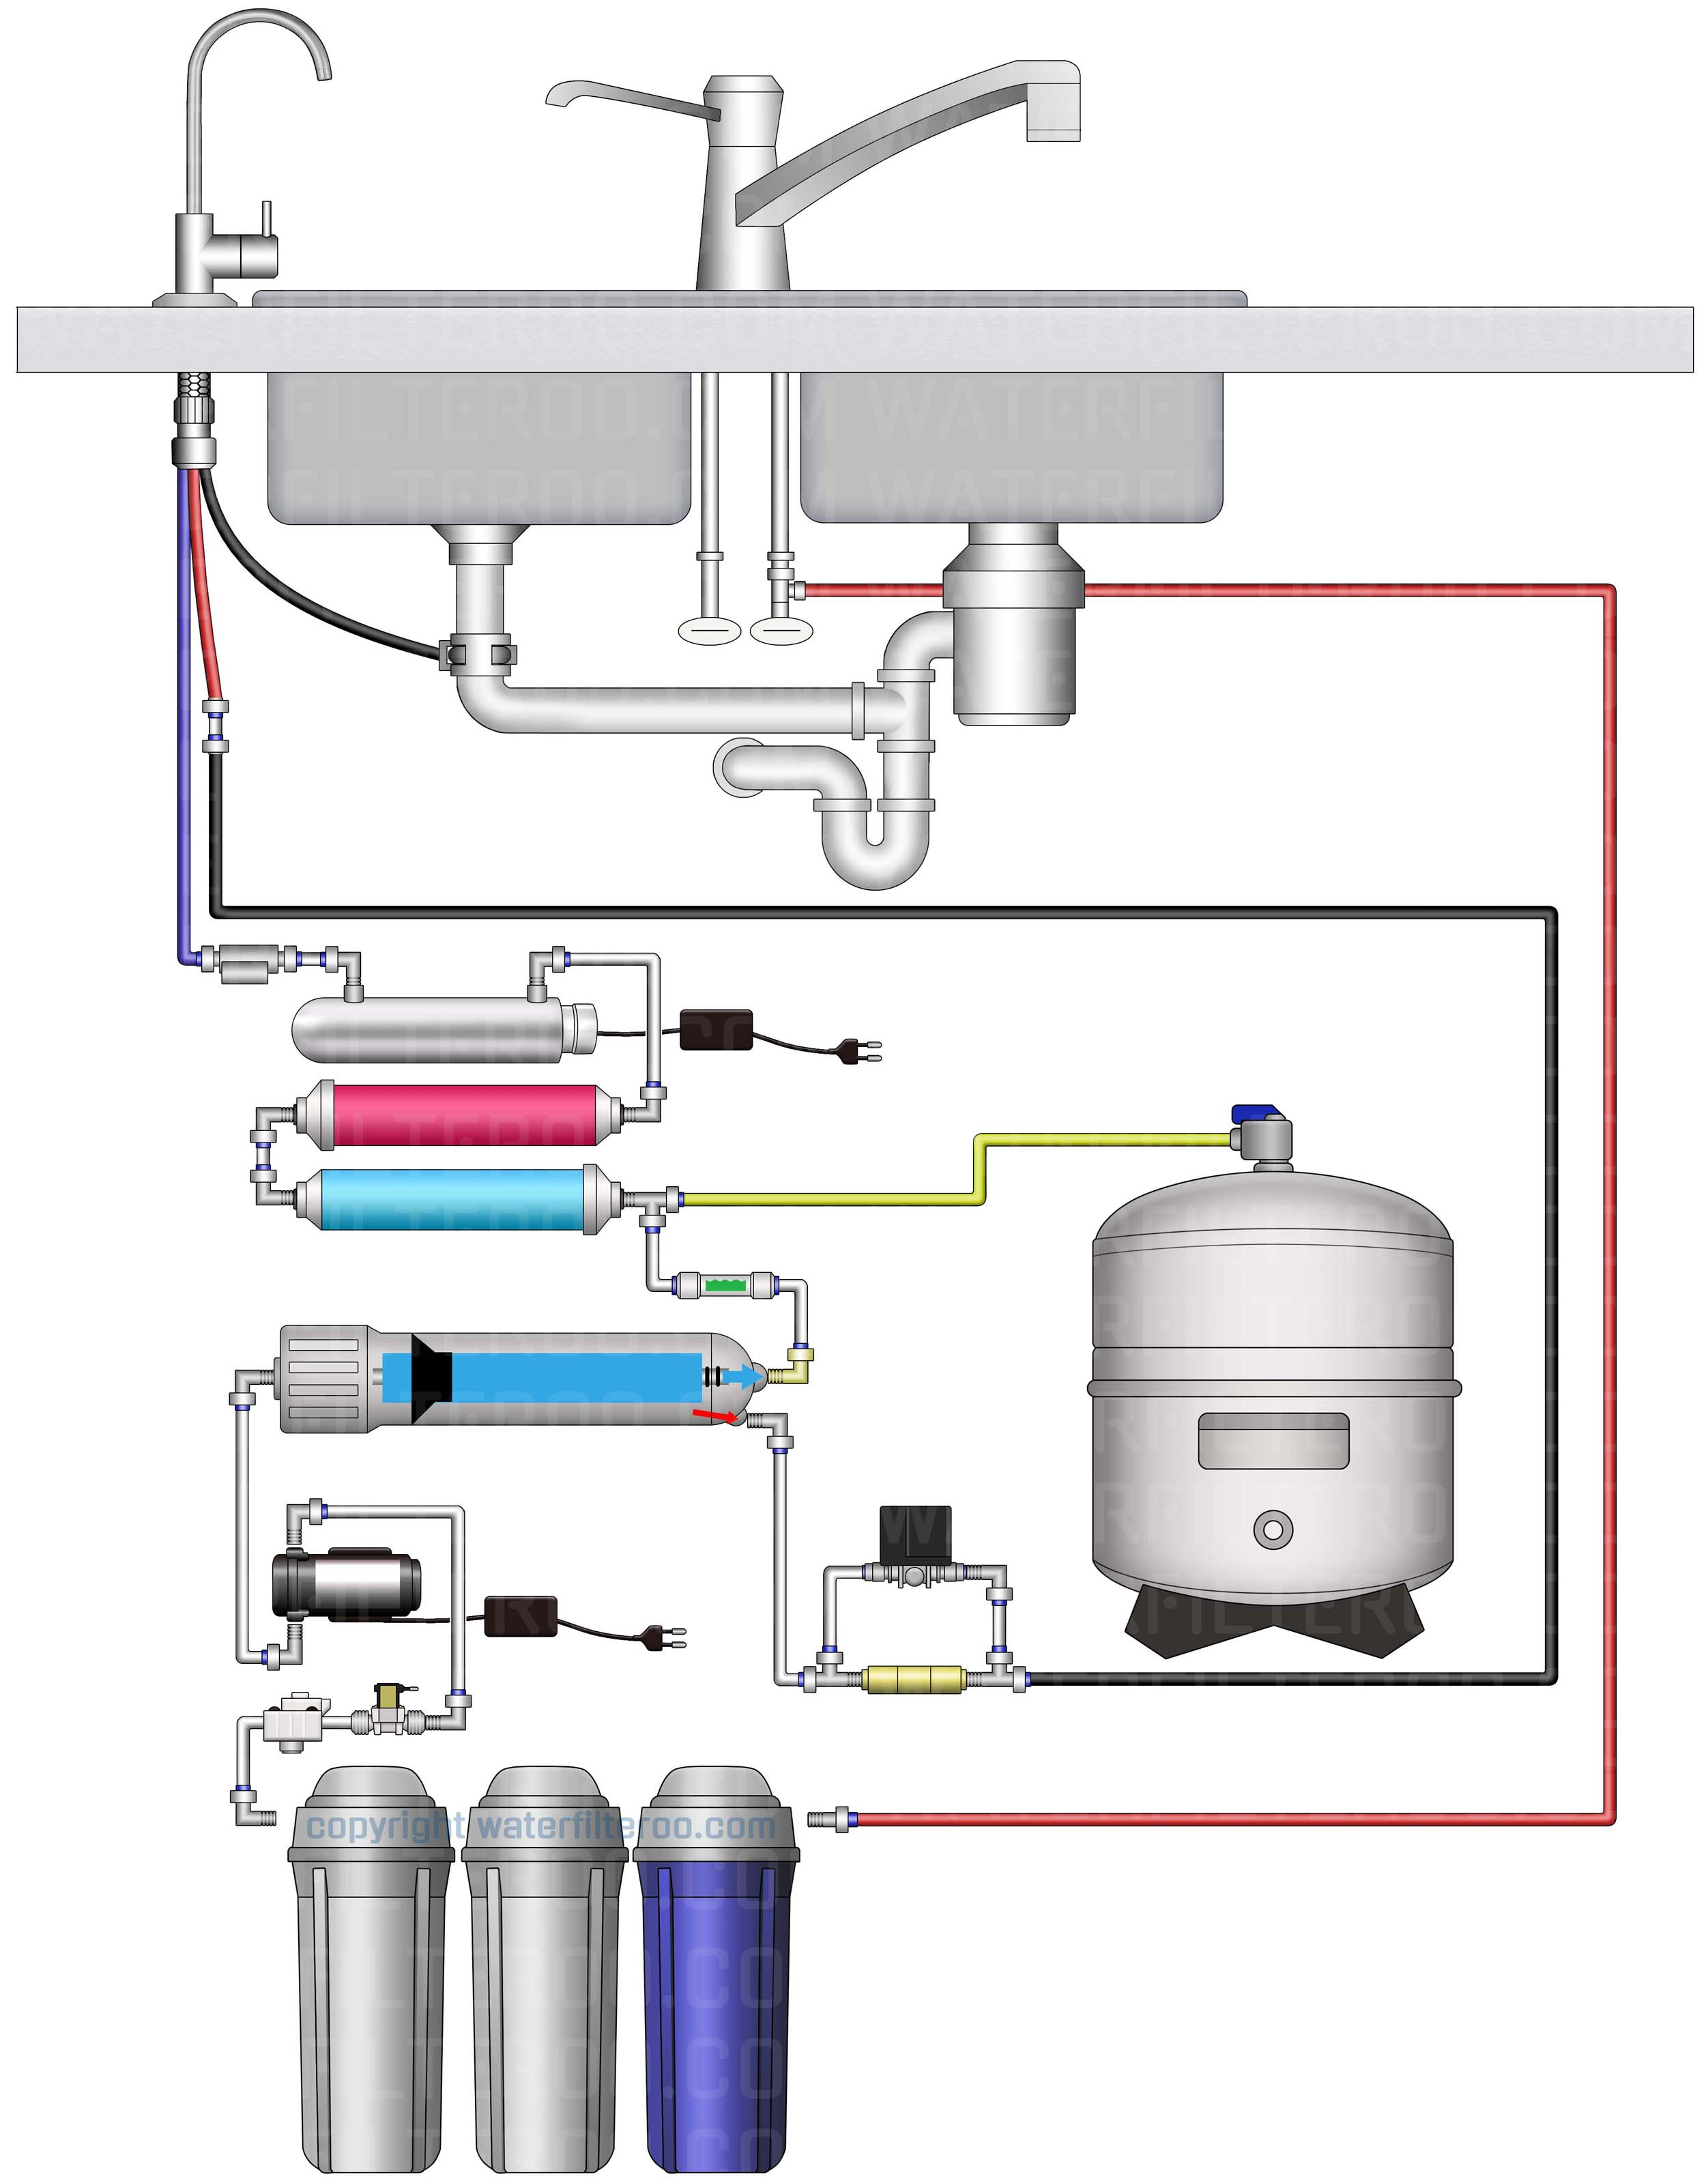 waterfilteroo ro installation diagram